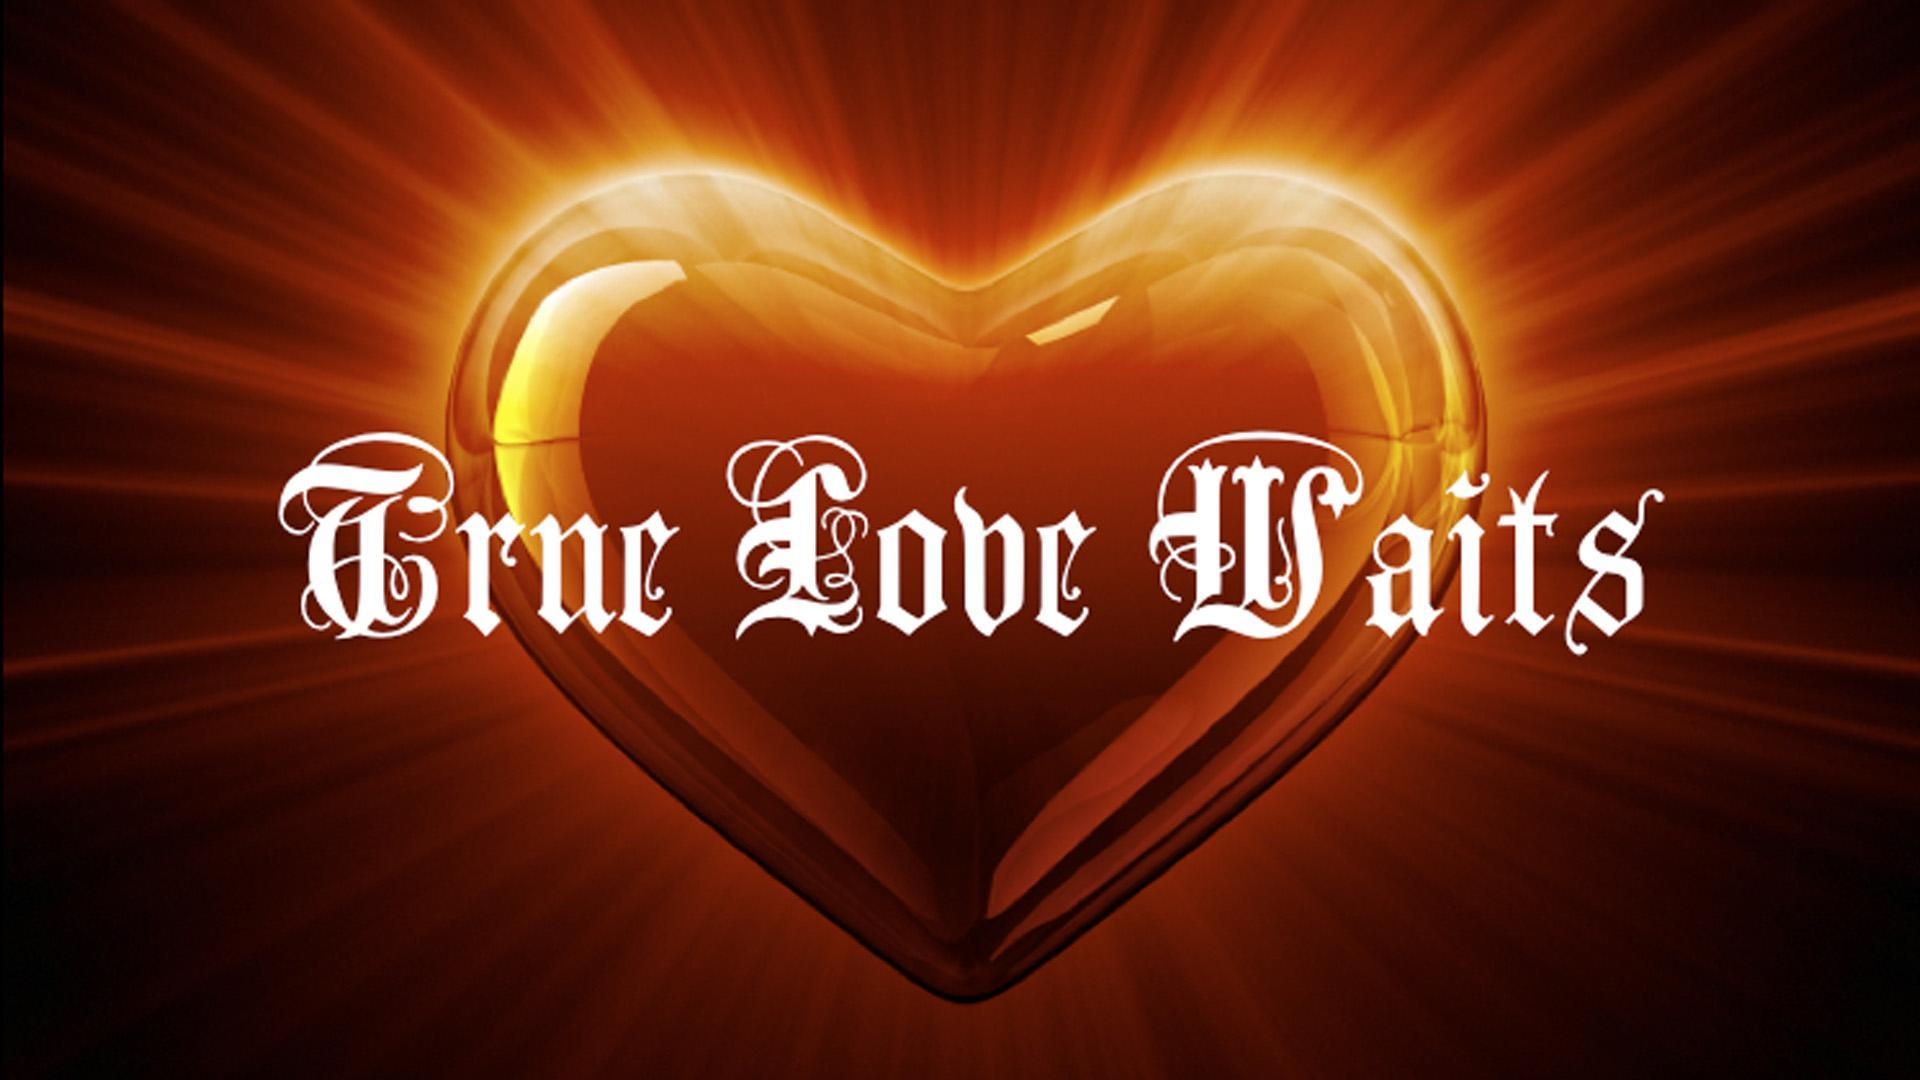 True Love Desktop Wallpaper : Wallpapers Of True Love - Wallpaper cave